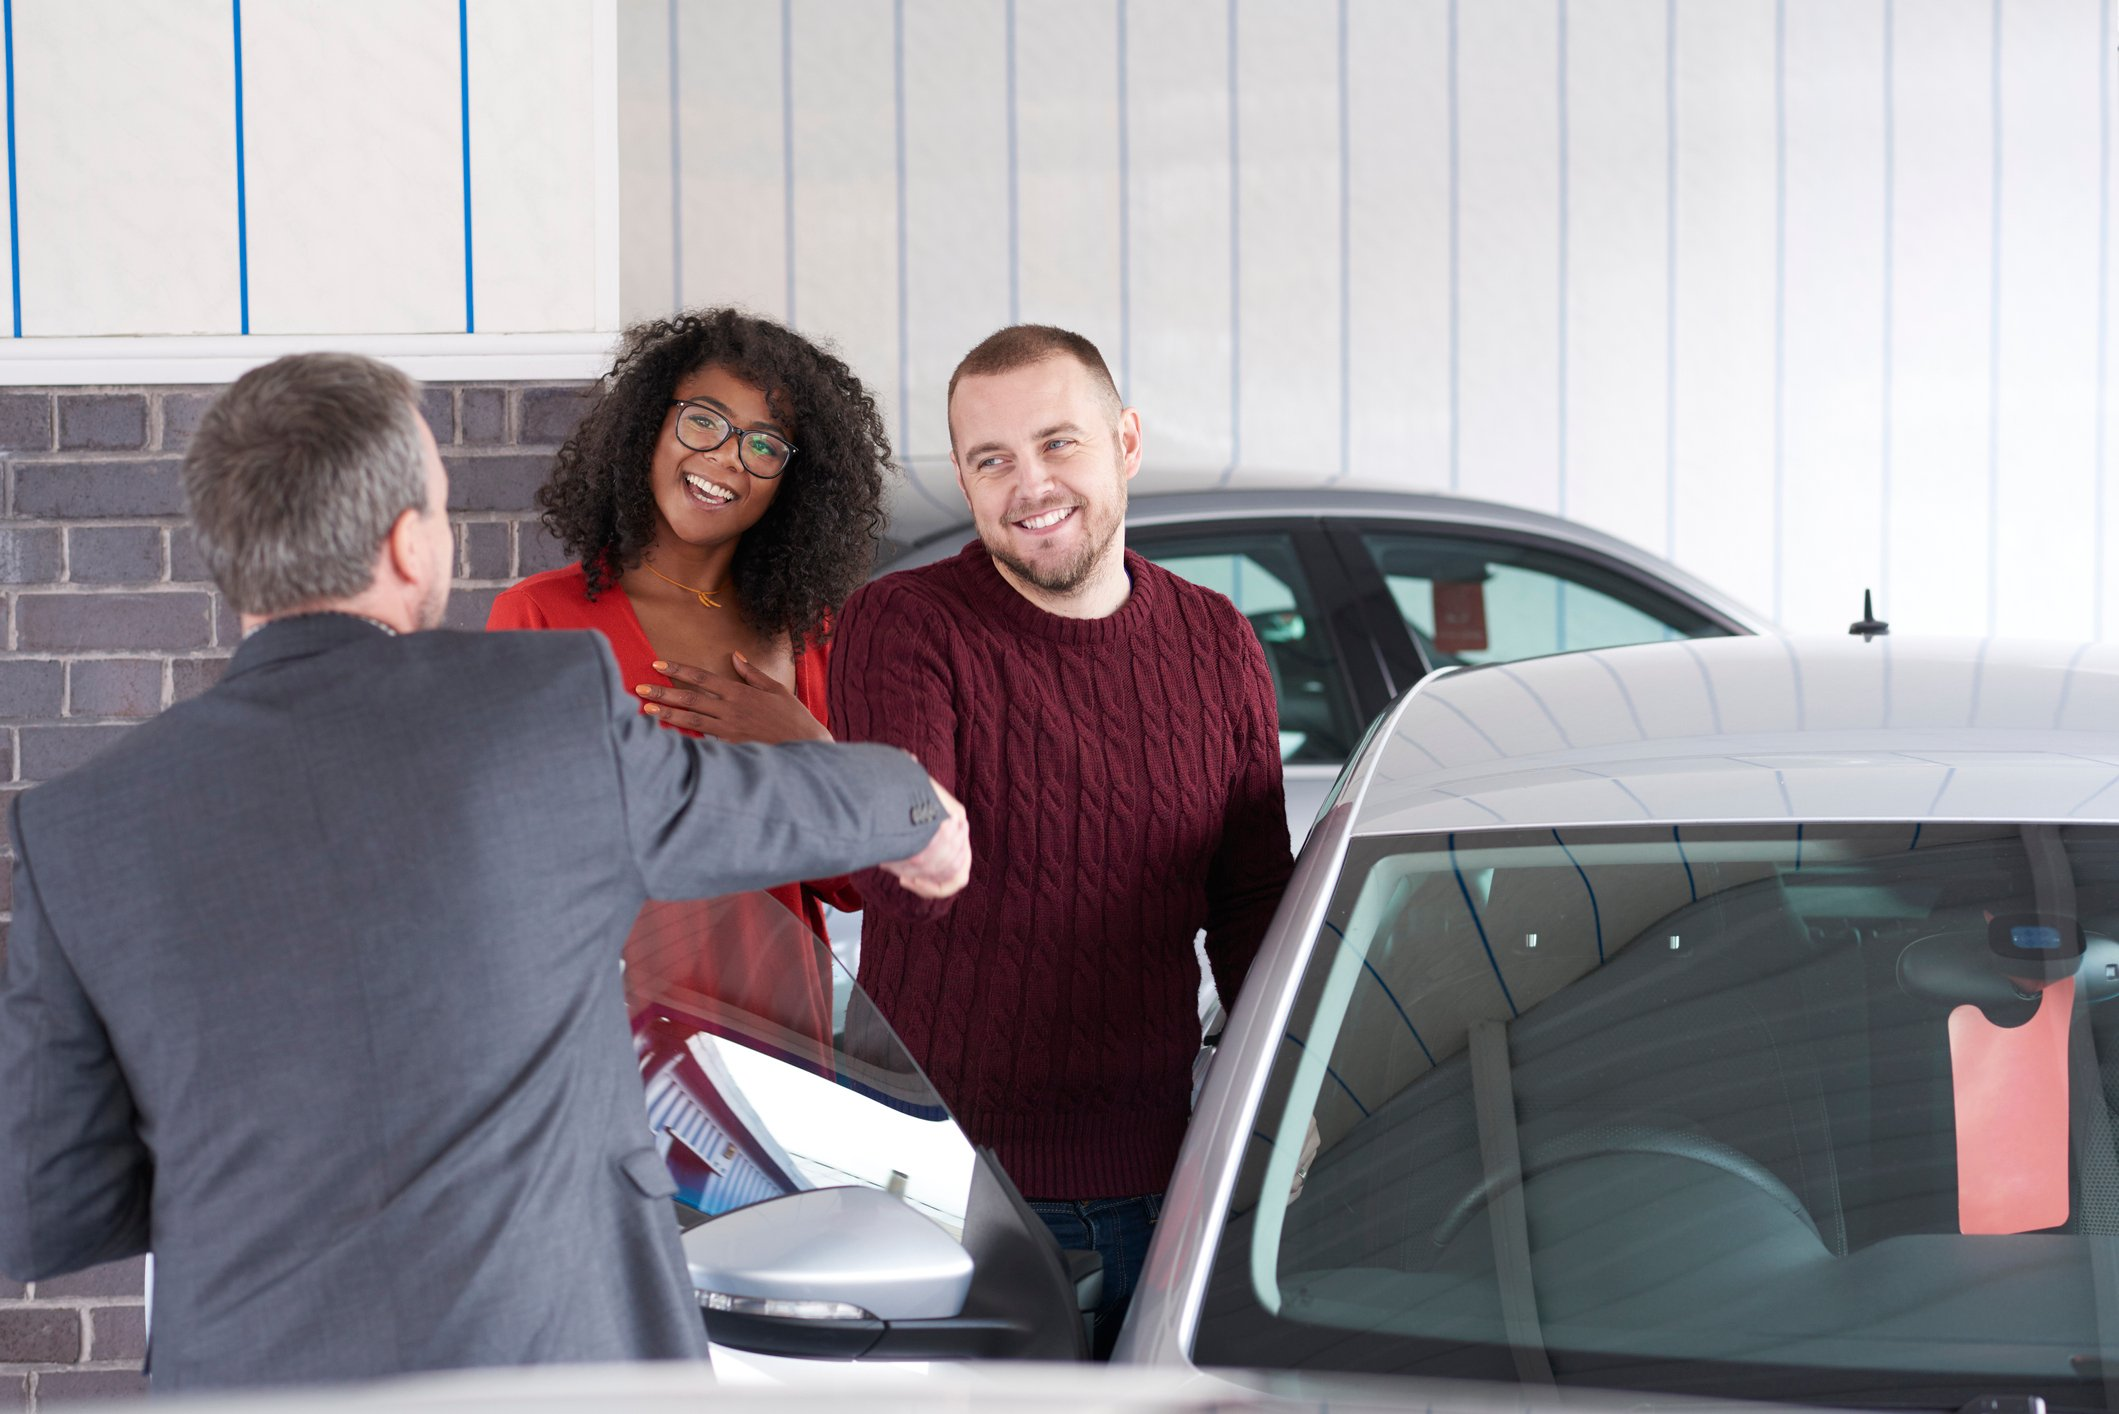 5 Used Car Market Statistics to Shift your Sales Strategy